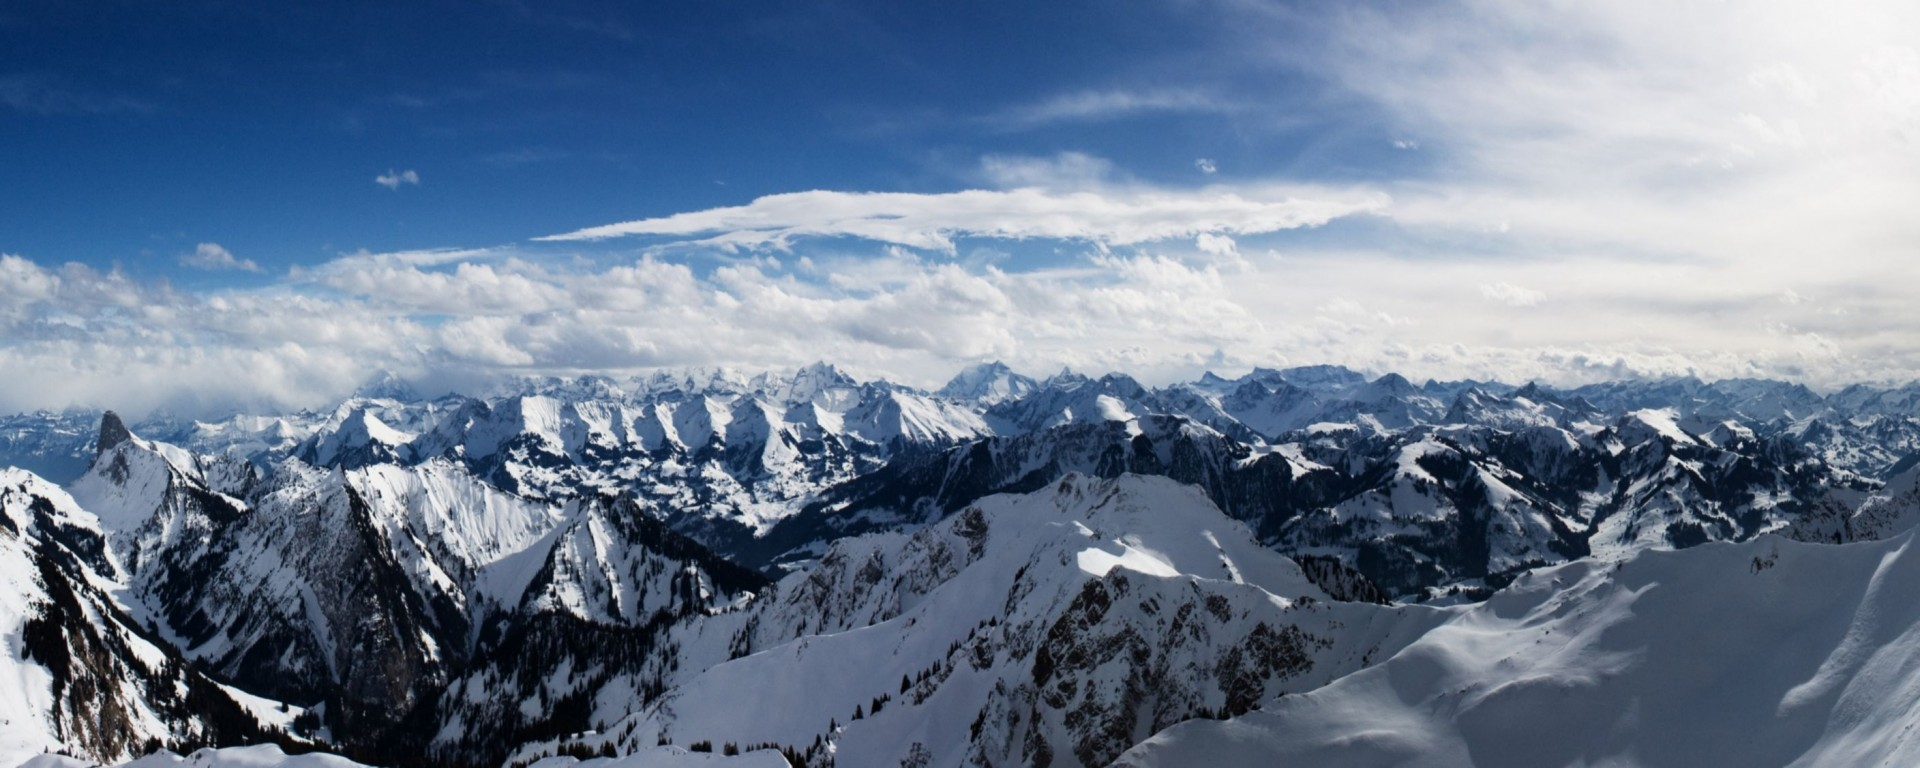 Alps Mountains Dual Monitor Other Wallpaper